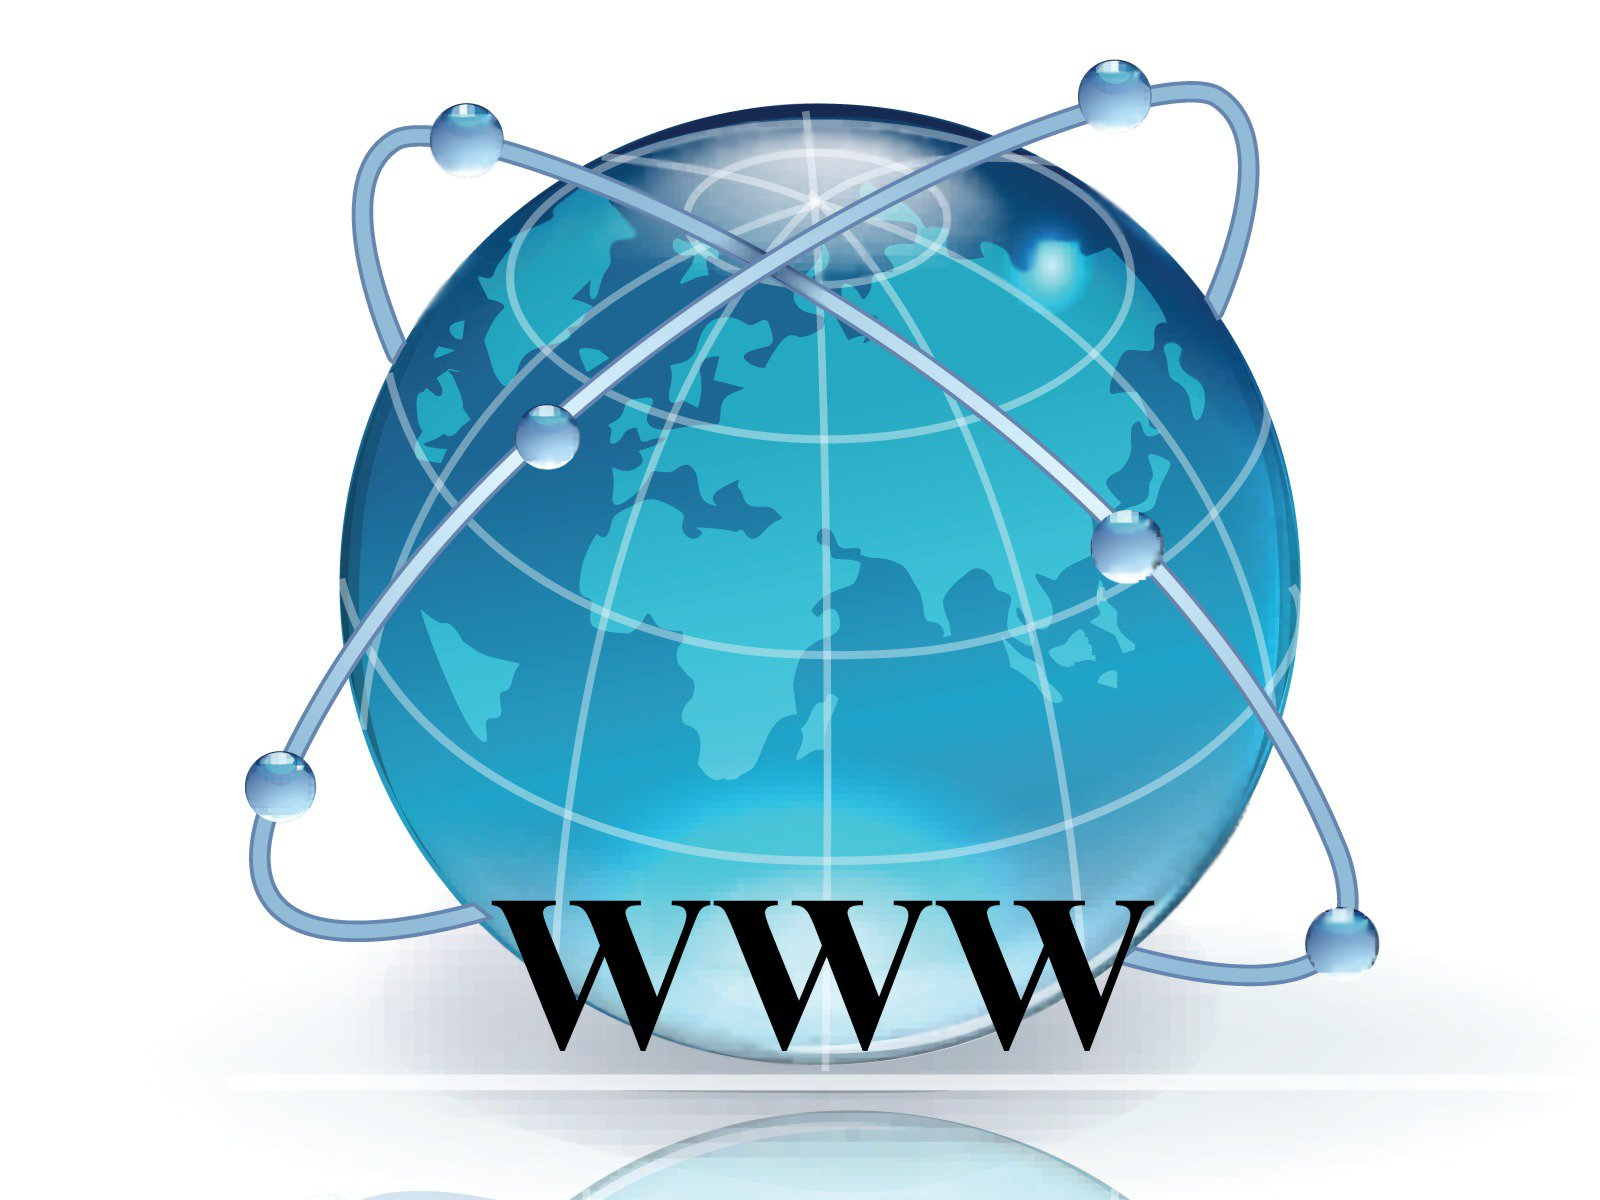 World wide web clipart 8 » Clipart Station.